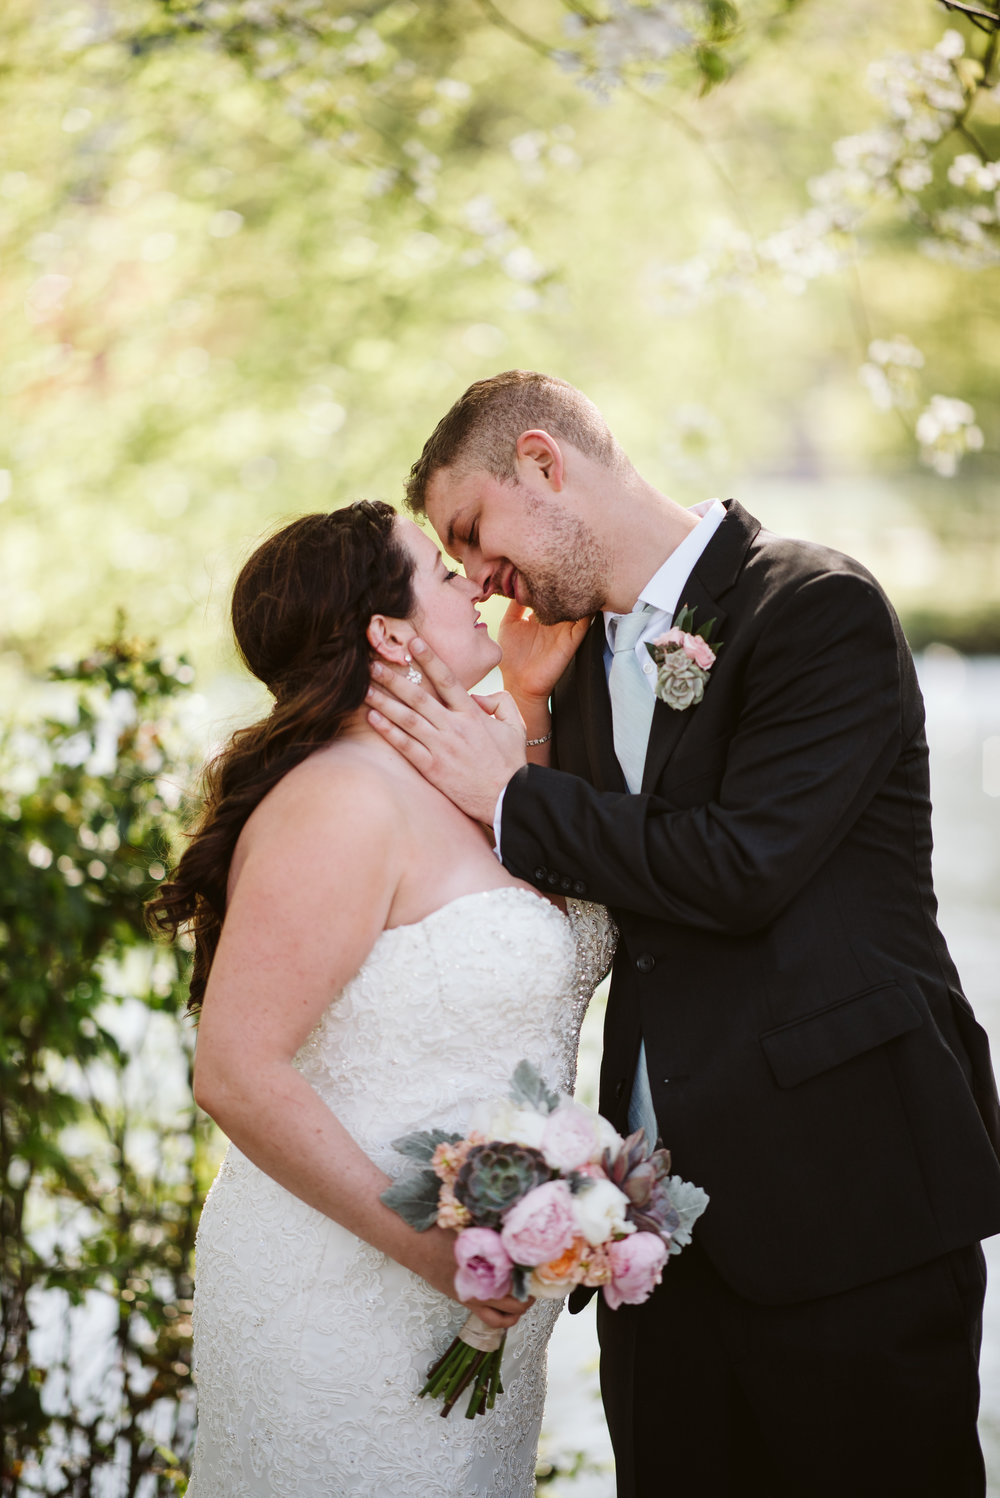 Caitlin + Matt_sneak previews-19.jpg